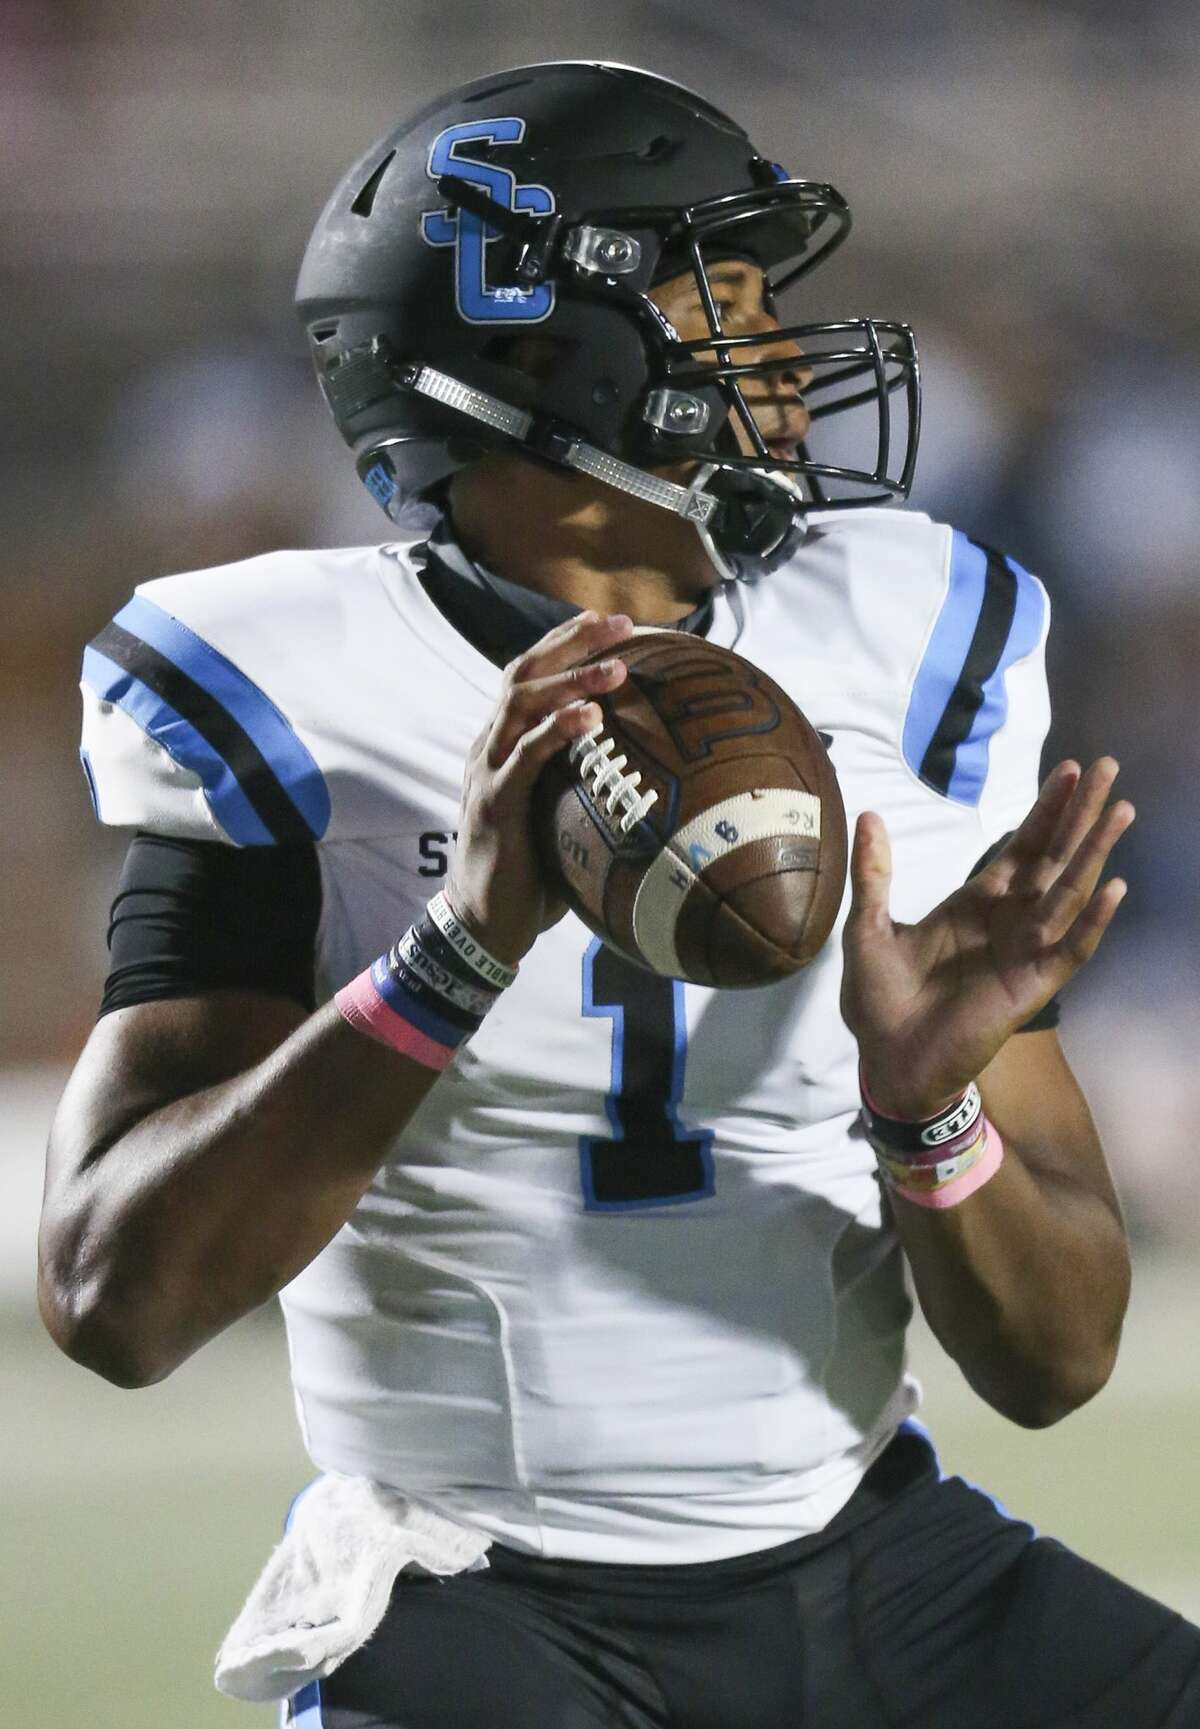 Shadow Creek quarterback Kyron Drones (1) drops back in the pocket against Strake Jesuit In the first quarter on October 23, 200 at Crusader Stadium in Houston, Texas .